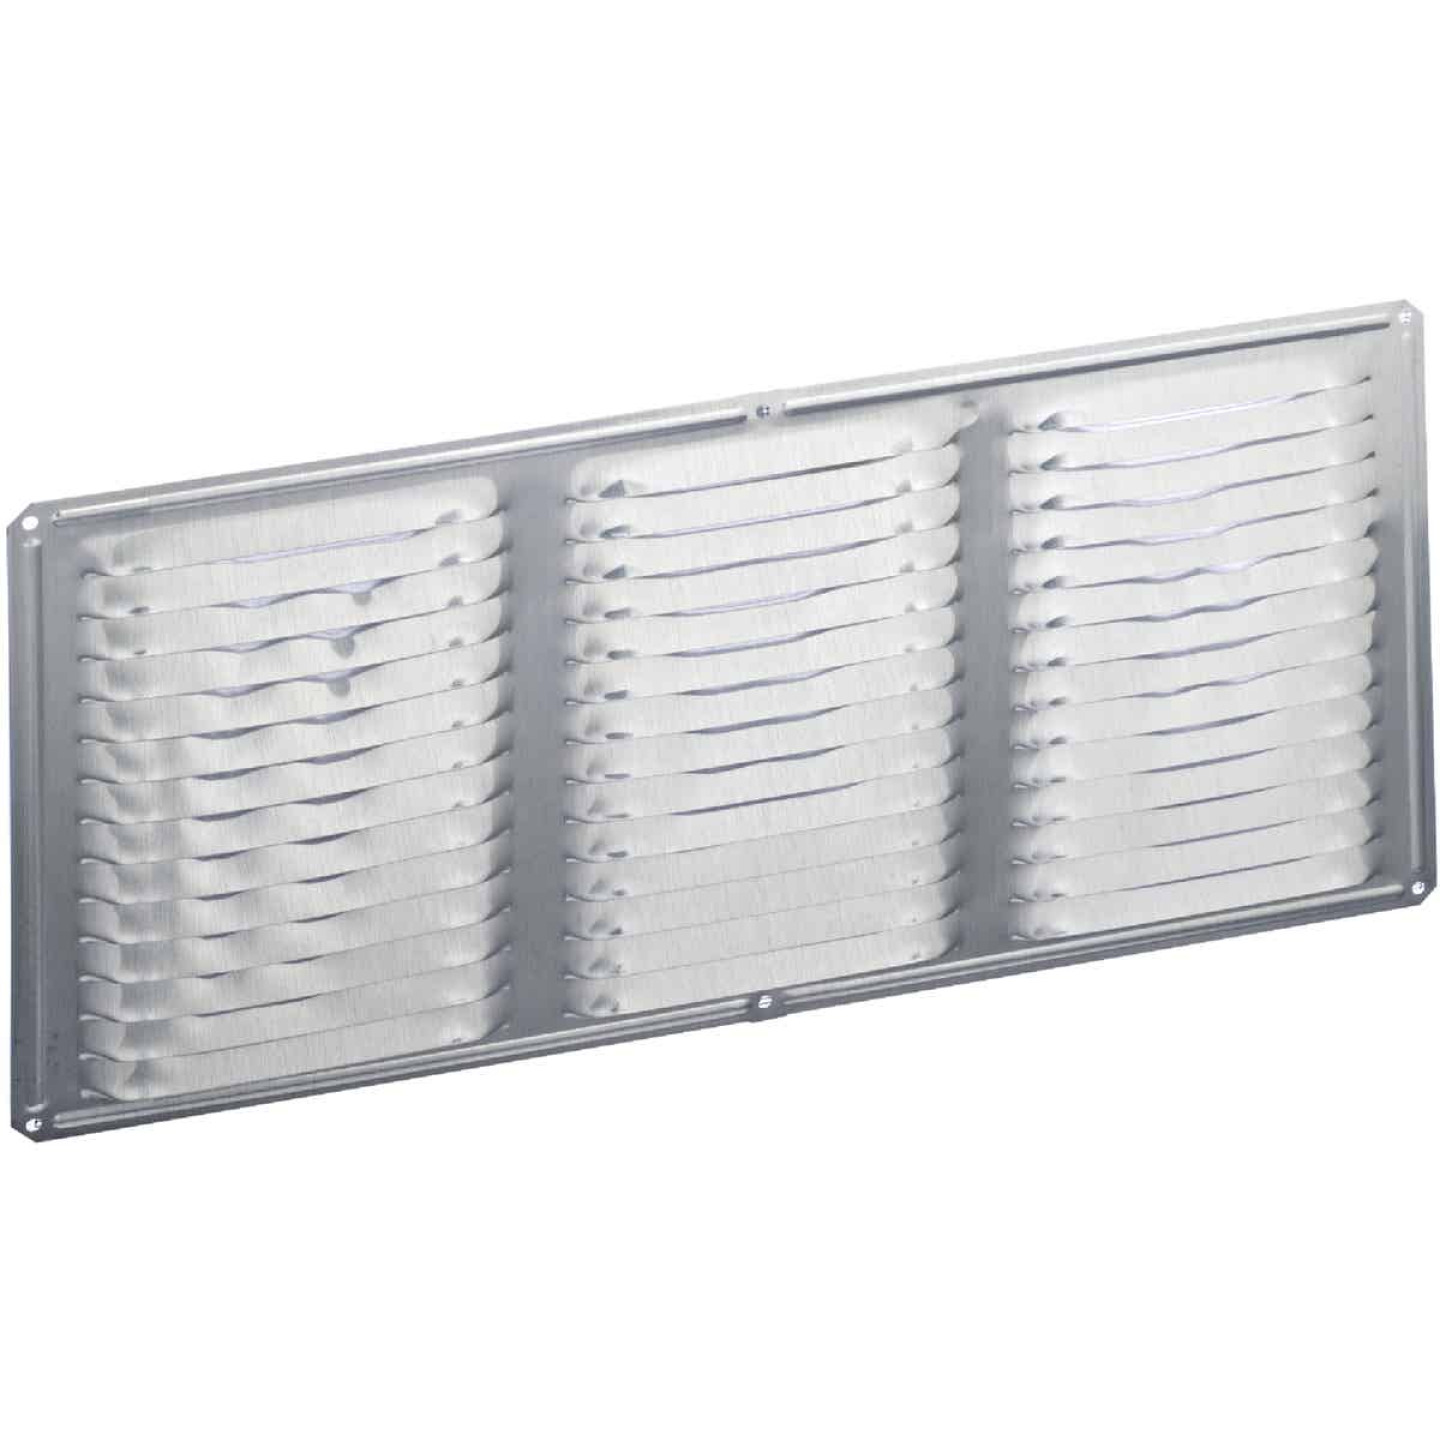 Air Vent 16 In. x 8 In. Galvanized Under Eave Vent Image 1